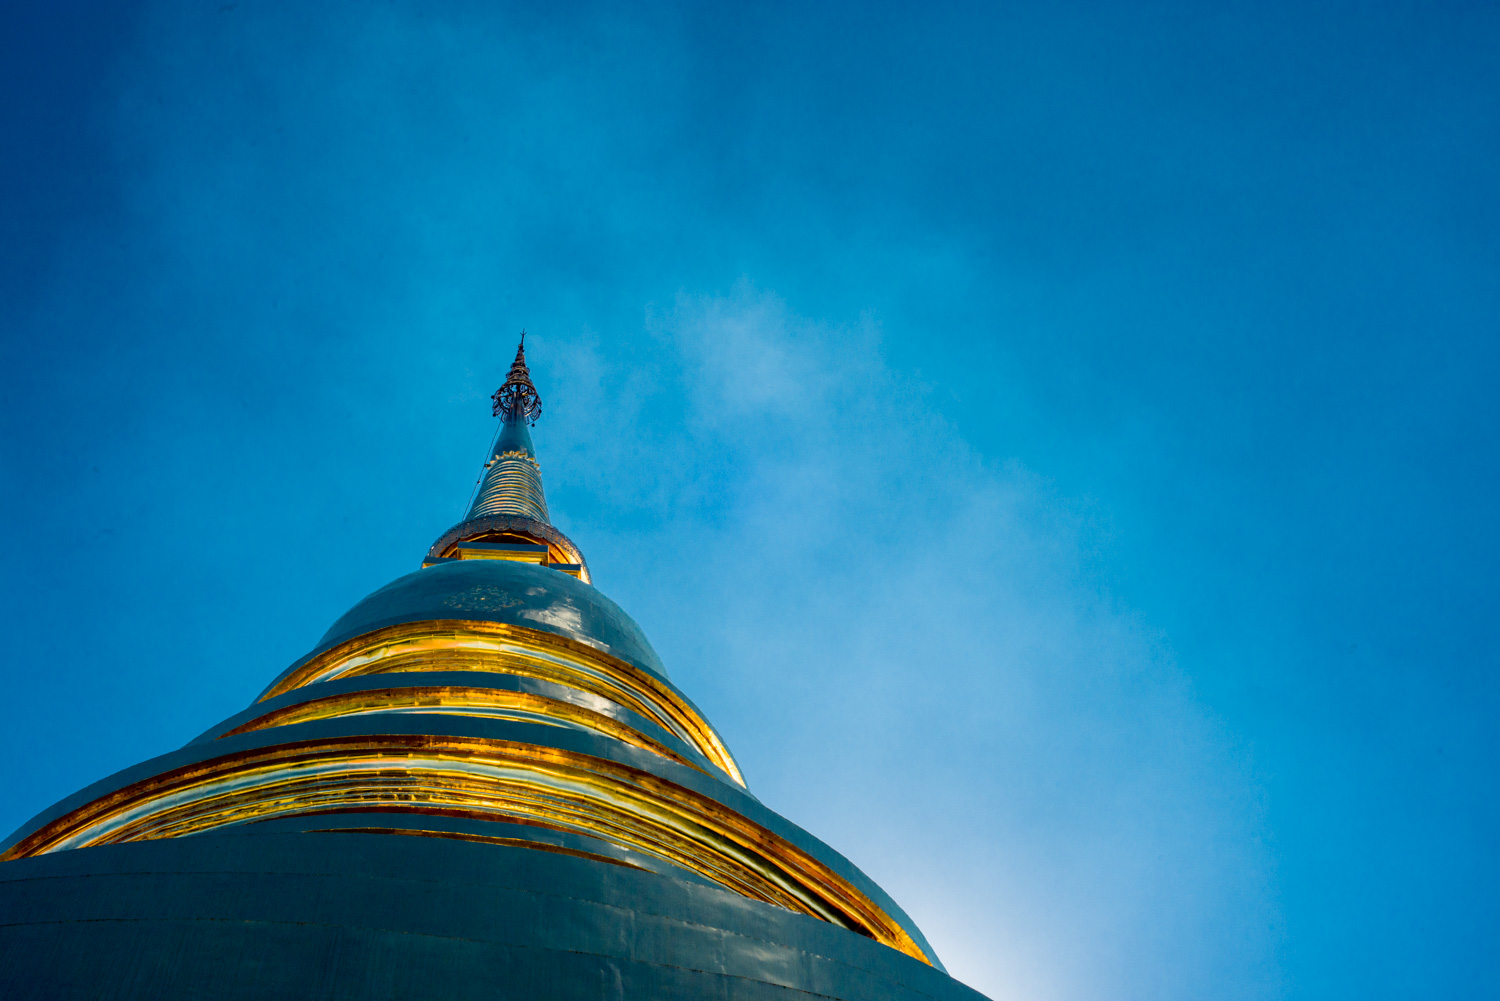 gold Buddhist chedi against a blue sky taken during a Chiang Mai Photo Workshop ©Kevin Landwer-Johan